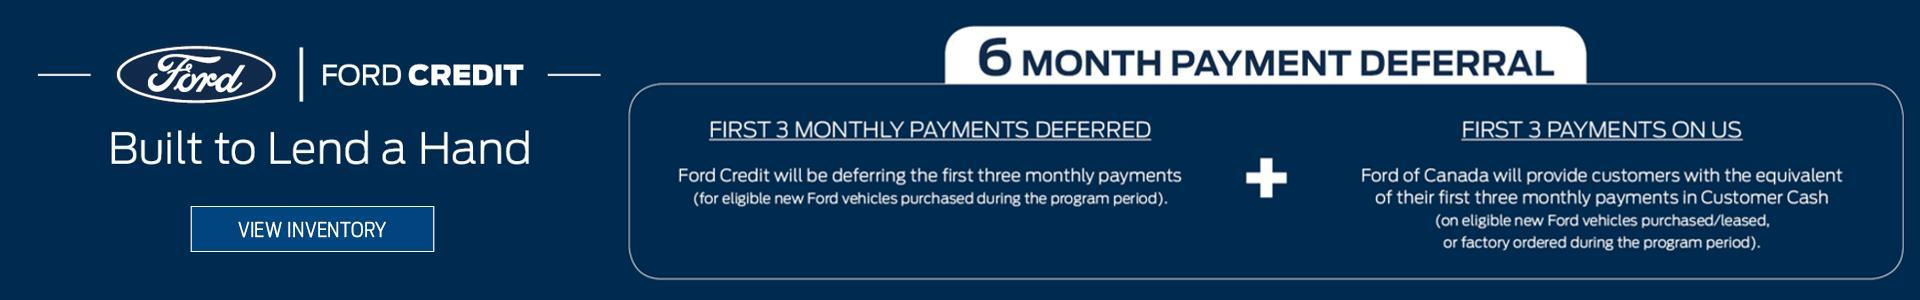 Metro Ford, Ford Credit Lend a Hand Program, serving Calgary, Alberta